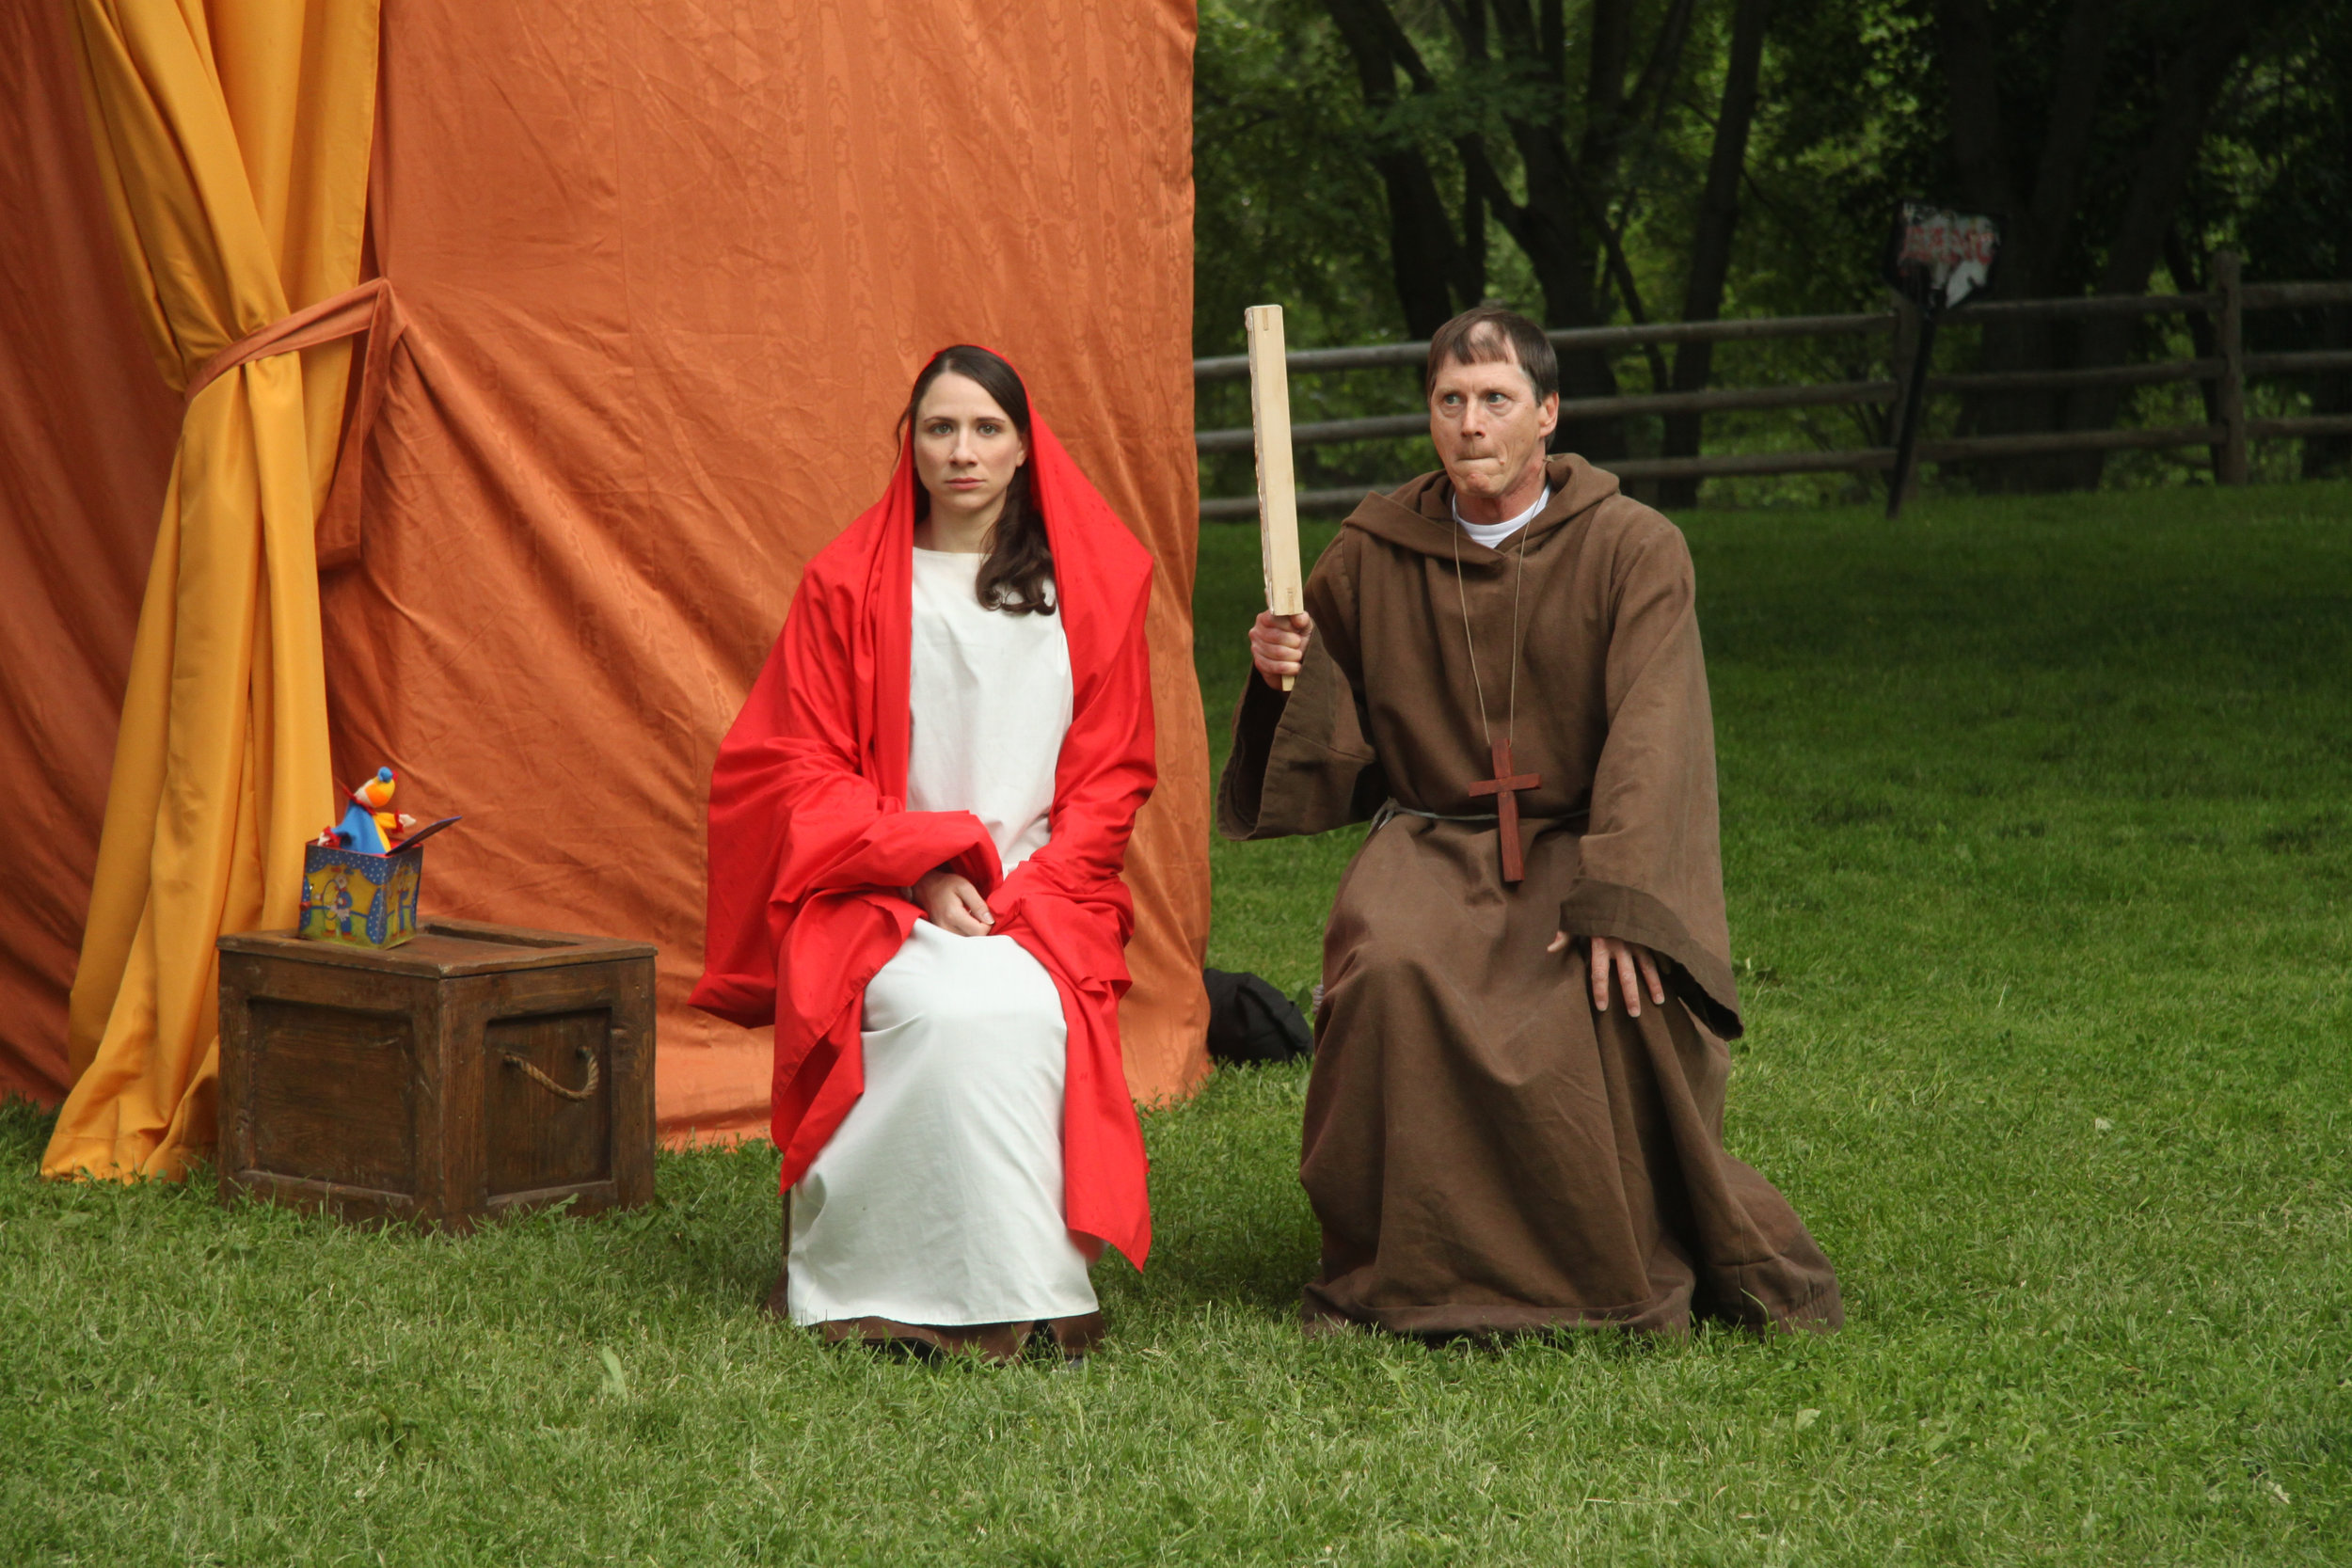 Julie Tepperman and Richard Binsley in Passion Play (Part One)